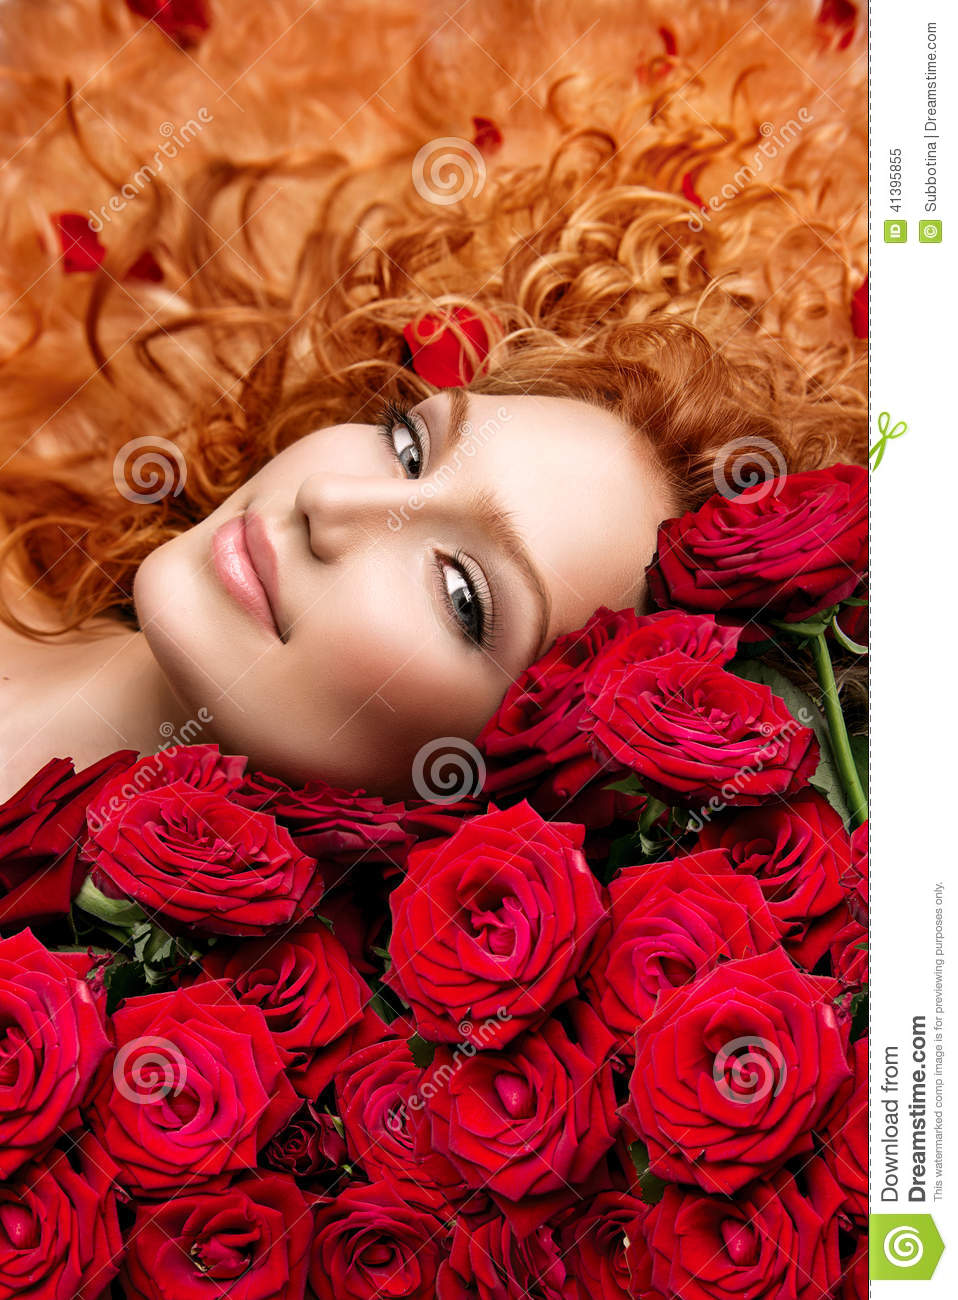 Woman With Red Hair And Roses Stock Photo Image 41395855